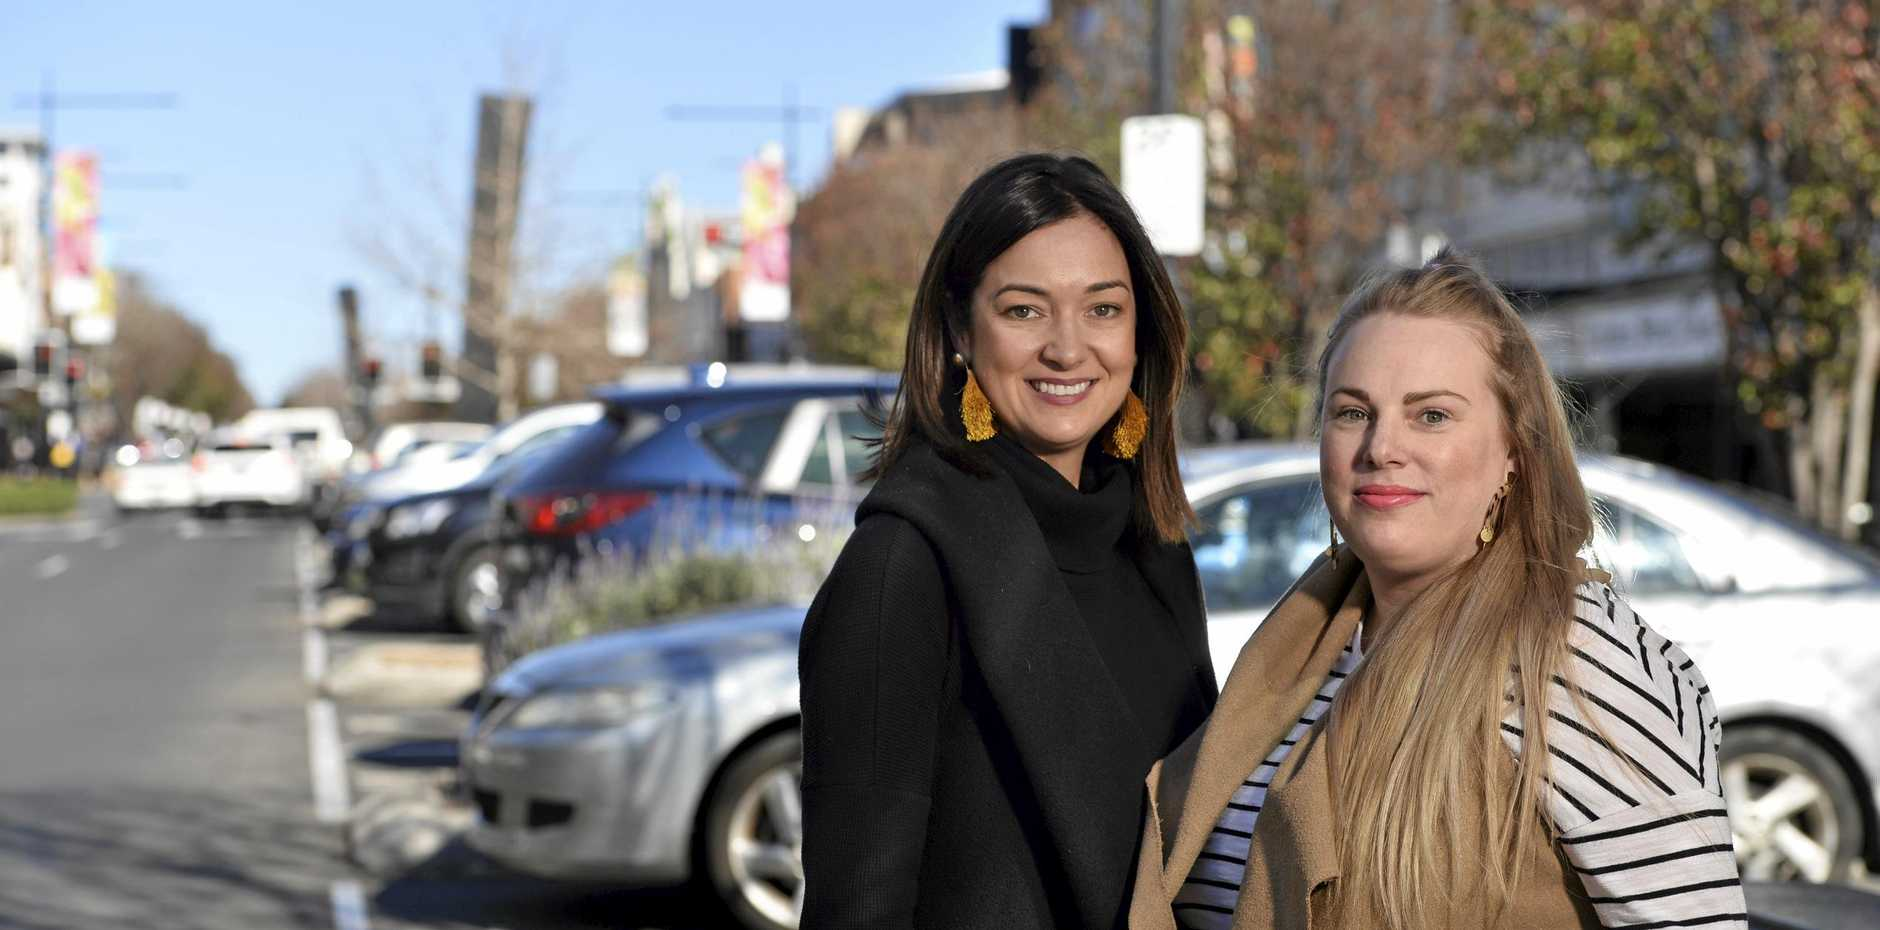 The Bungalow and Basket owners Sally Cleary (left) and Jodi Paynter look forward to parking changes in the Toowoomba CBD, Tuesday, July 16, 2019.